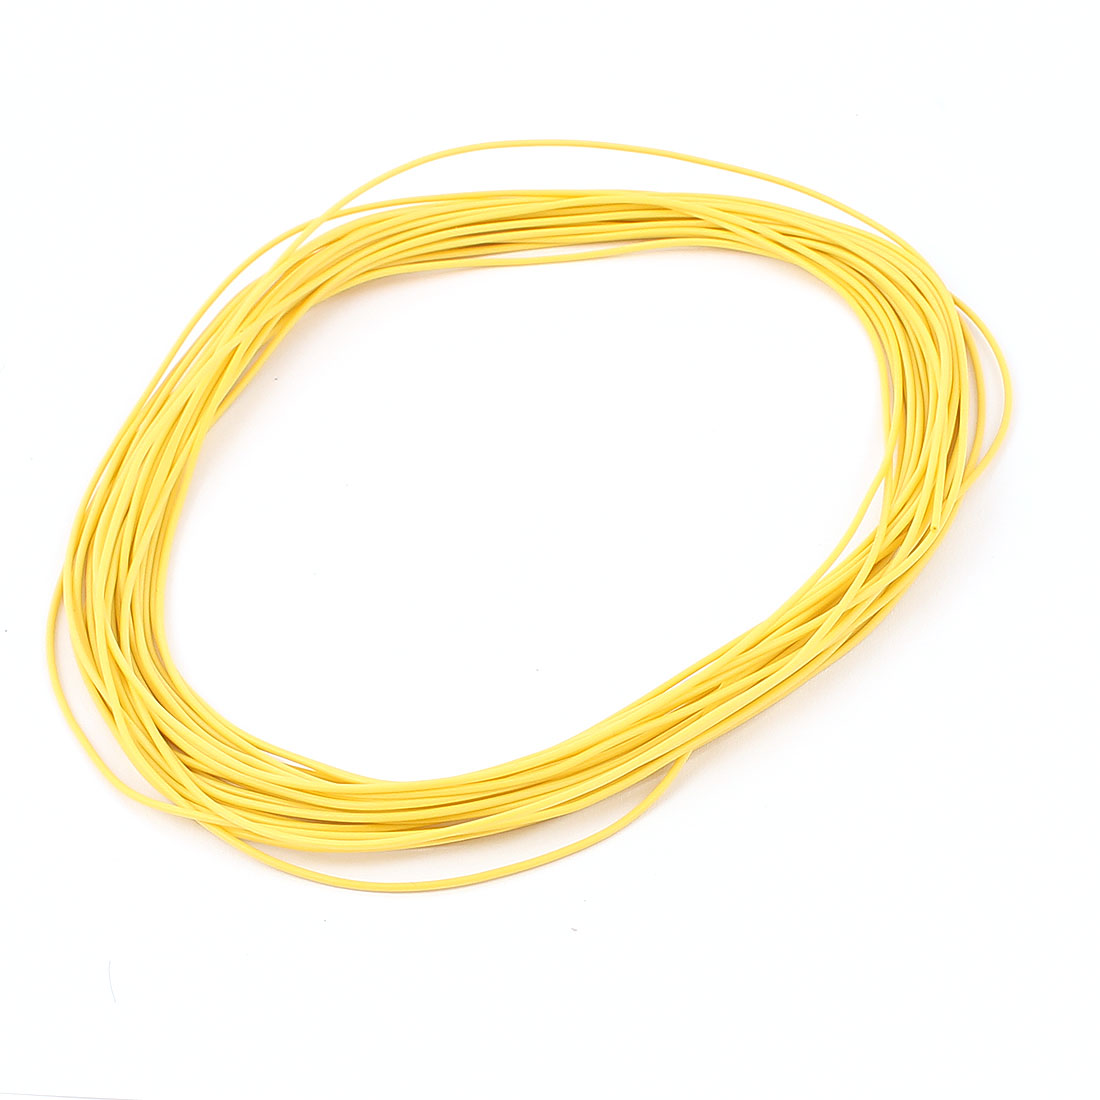 10M 28AWG Electric Copper Core Flexible Silicone Wire Cable Yellow